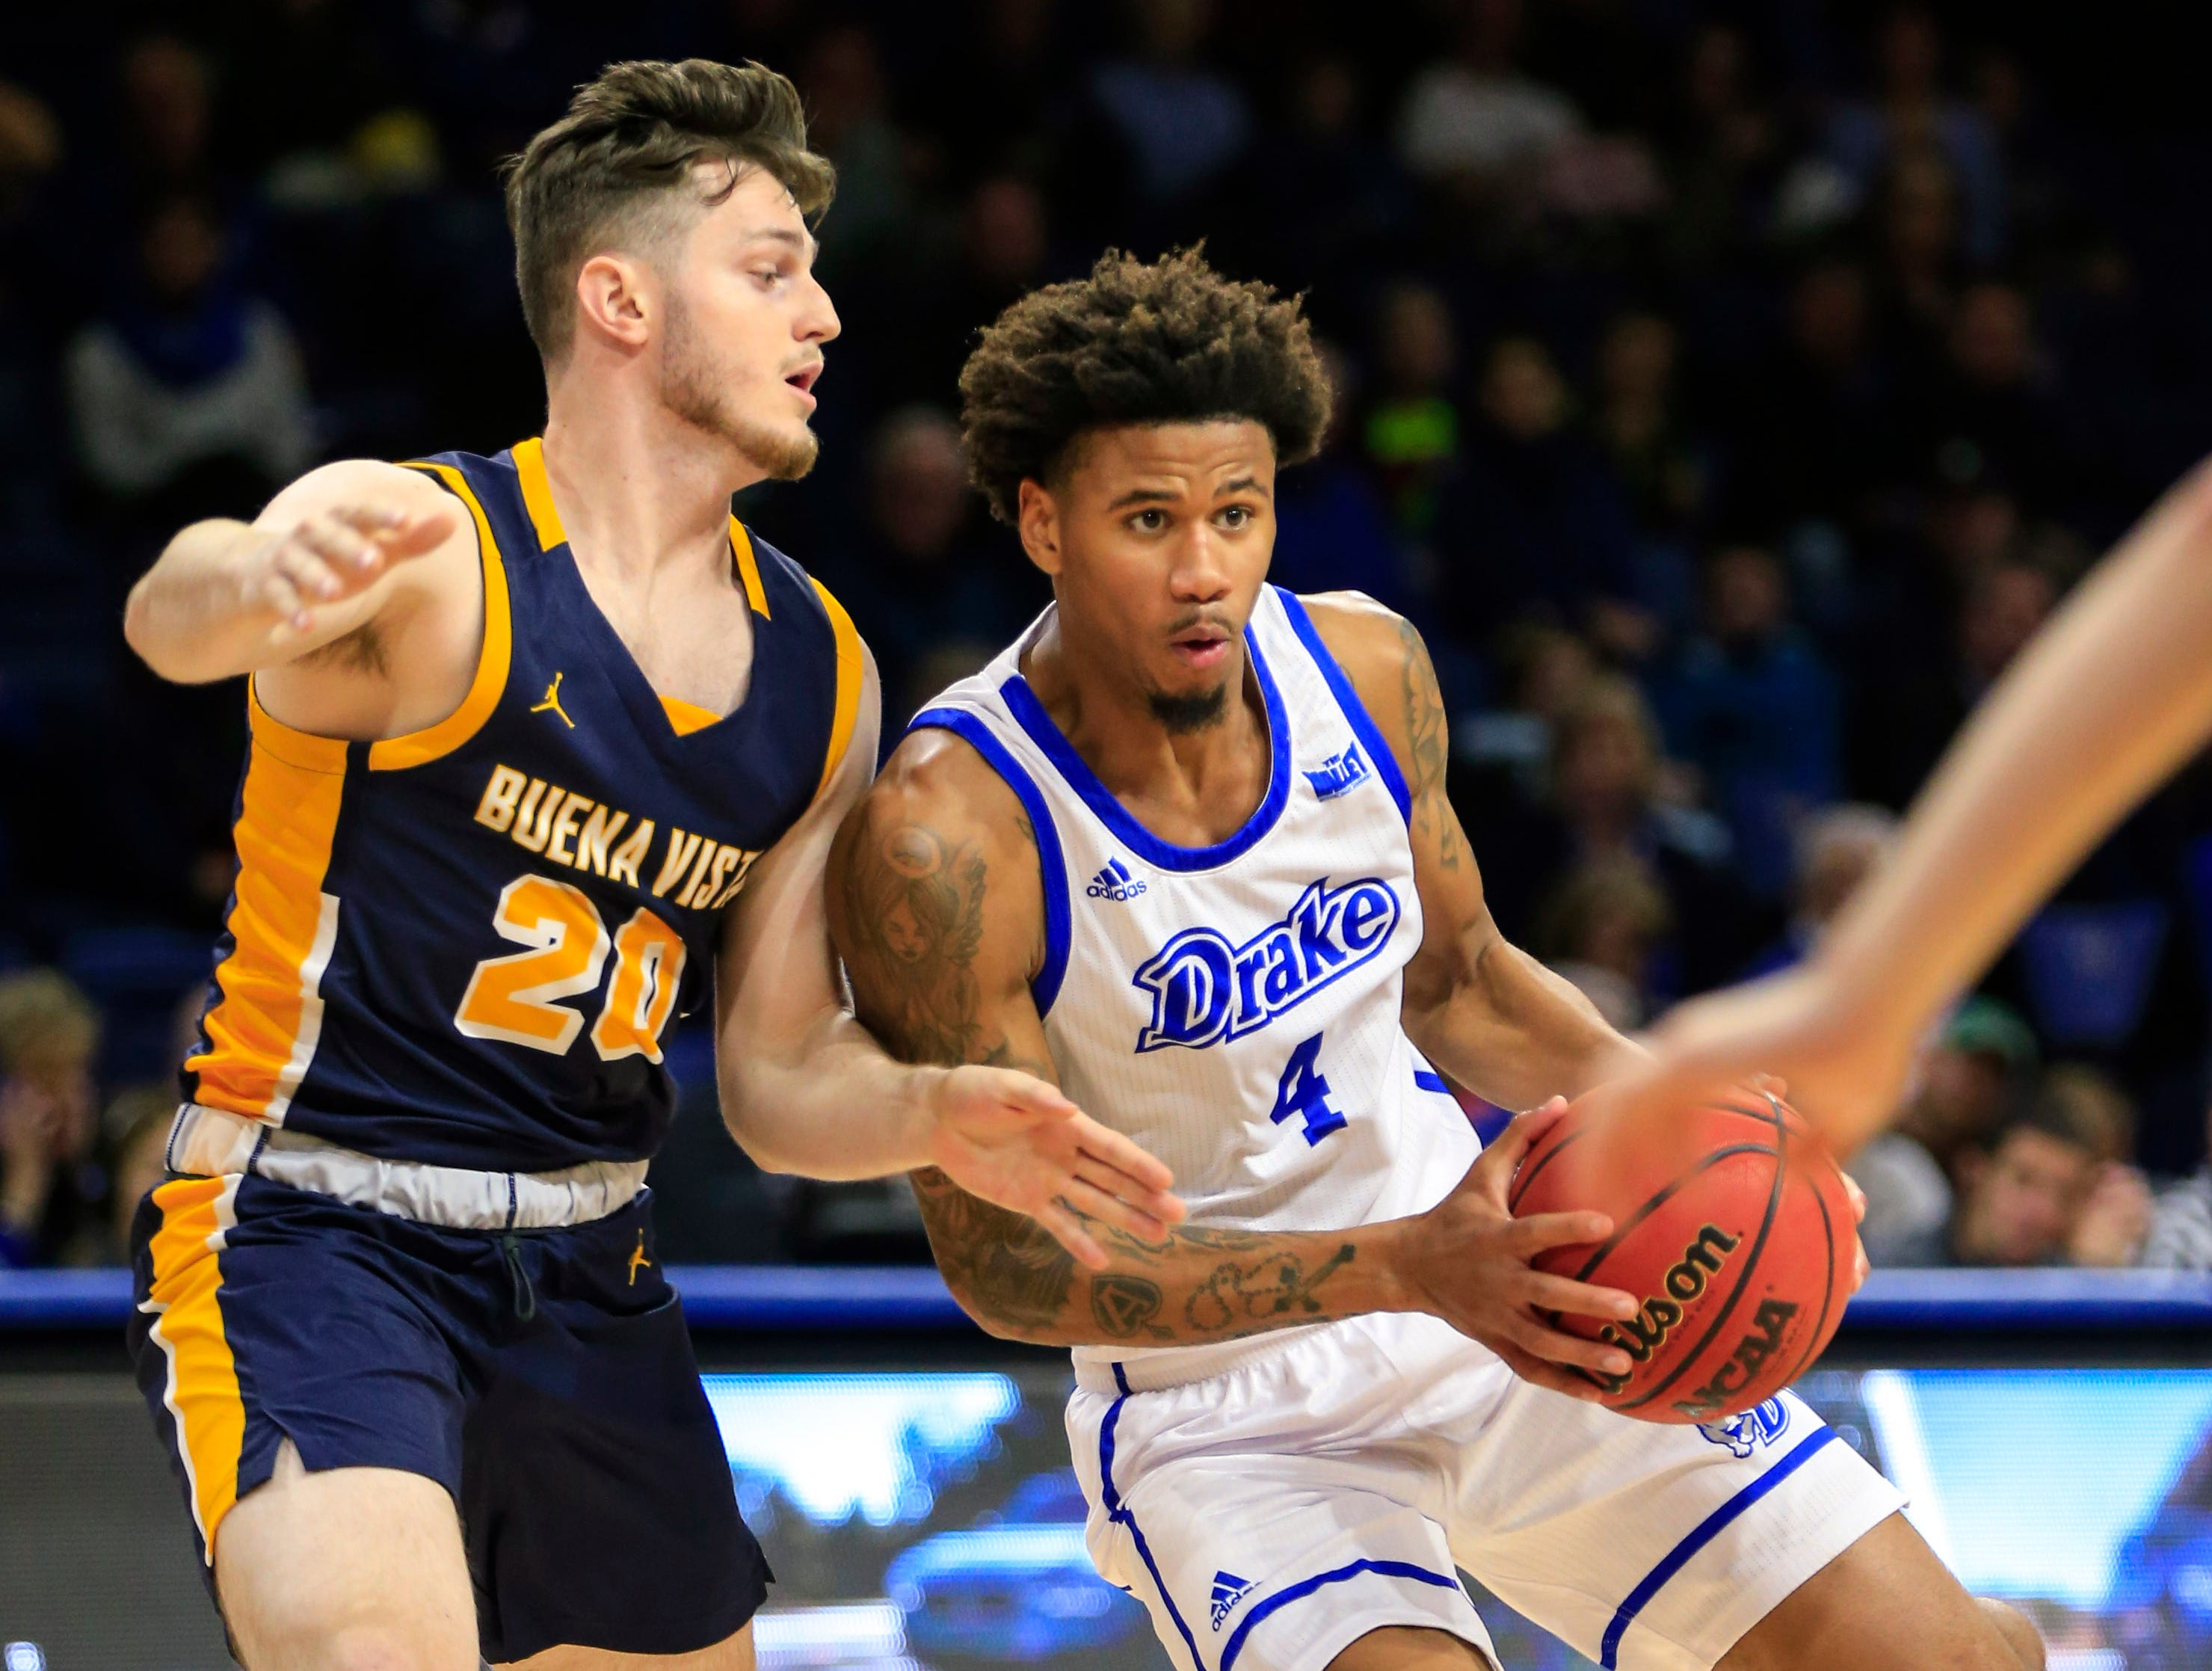 Anthony Murphy of Drake drives to the basket as Ryan Vogelei of Buena Vista defends during a game at the Knapp center Thursday, Nov. 8, 2018.